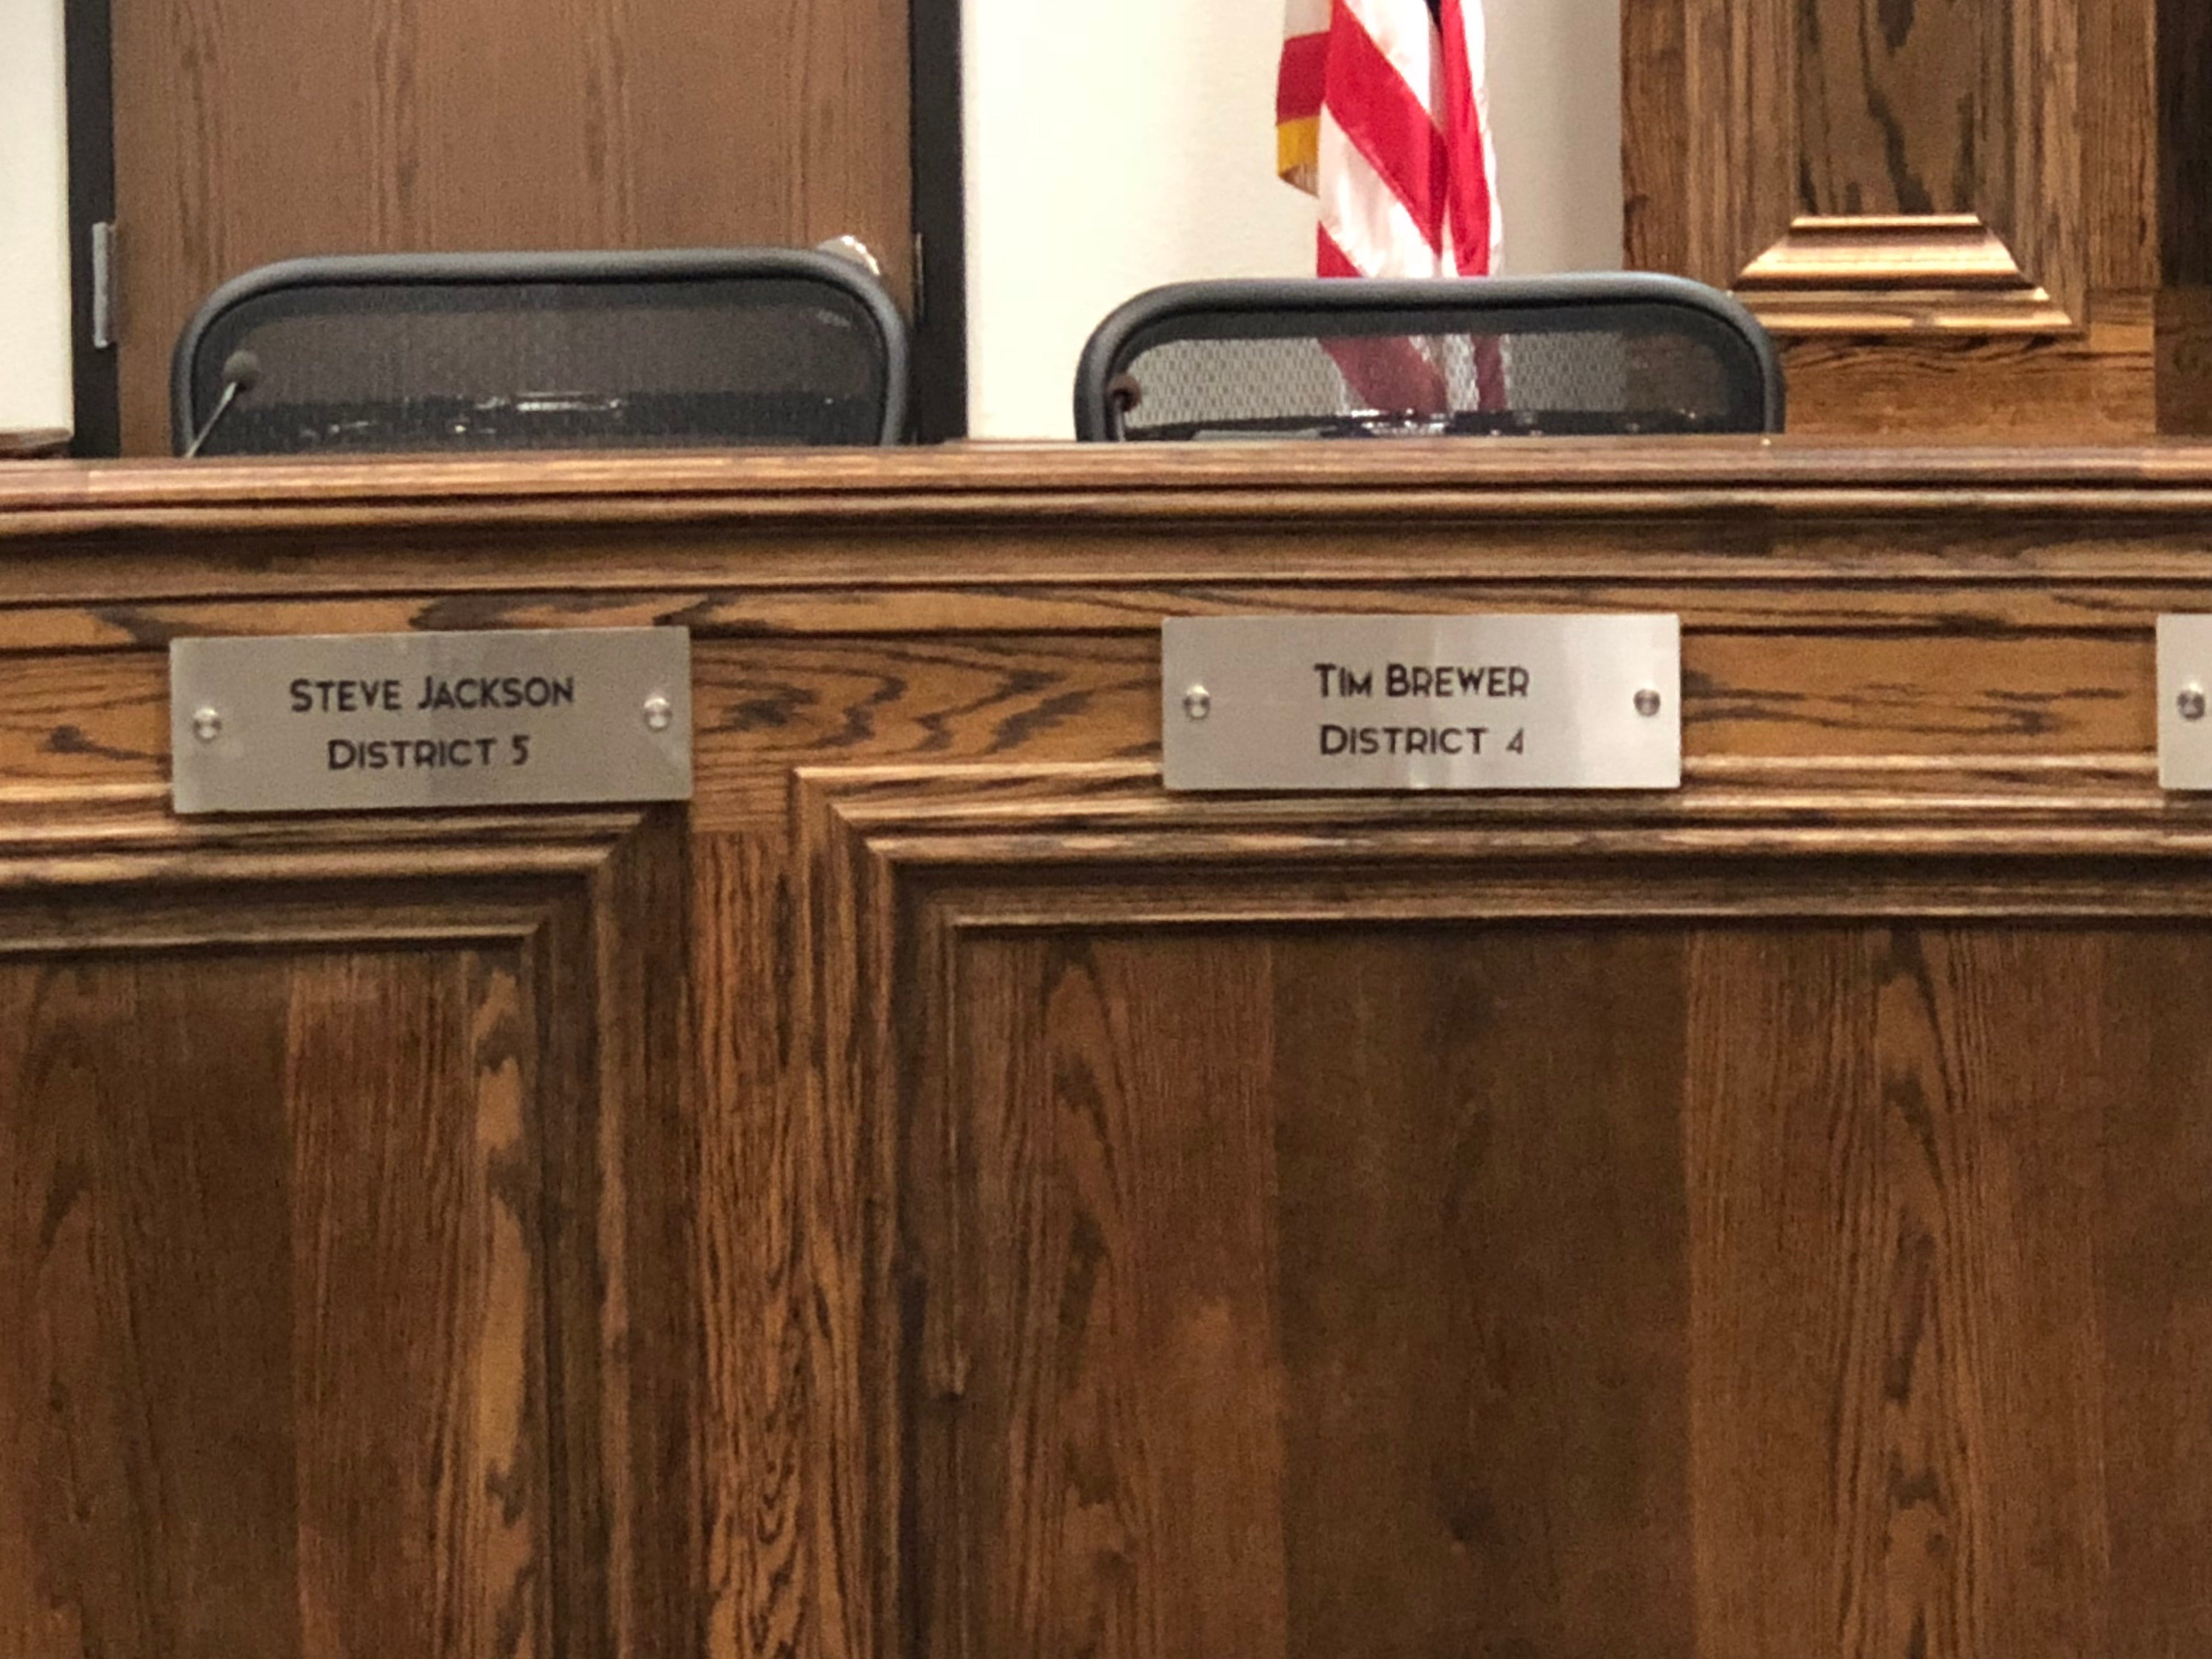 Name plates are seen Tuesday for newly elected councilors Steve Jackson, District 5, and Tim Brewer, District 4.